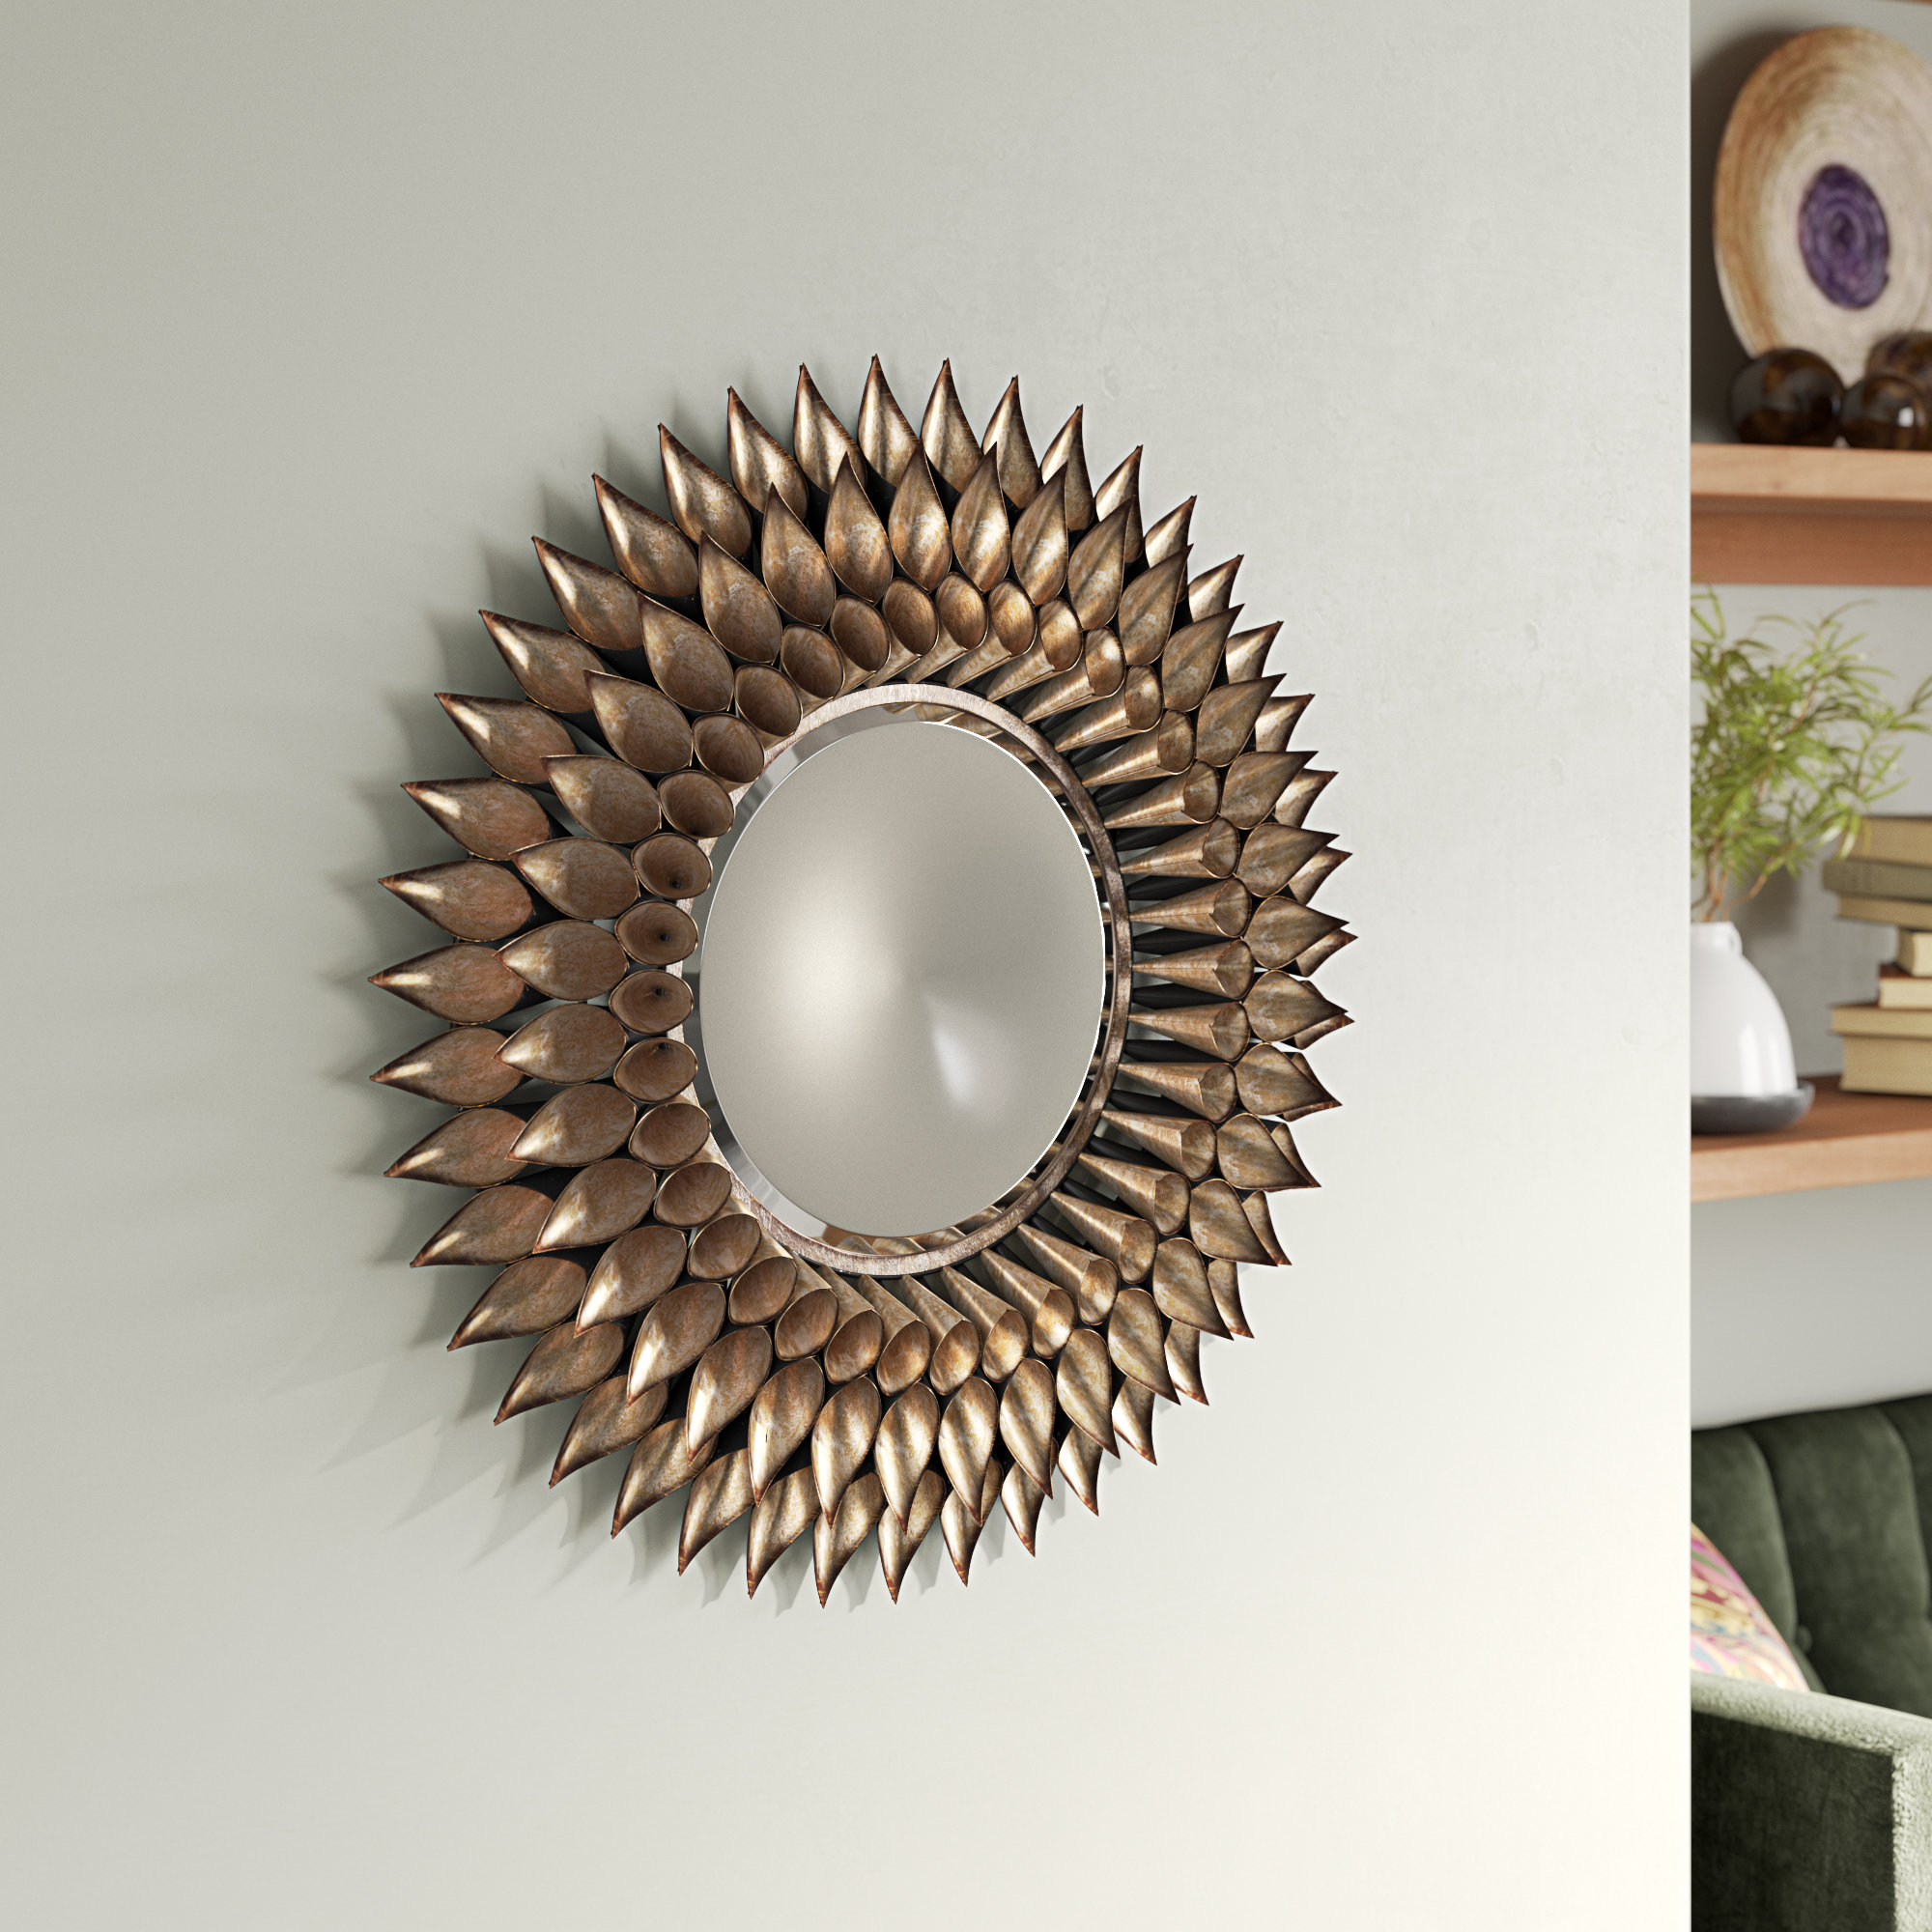 Round Galvanized And Weathered Silver Decorative Wall Mirror Intended For Karn Vertical Round Resin Wall Mirrors (View 9 of 20)